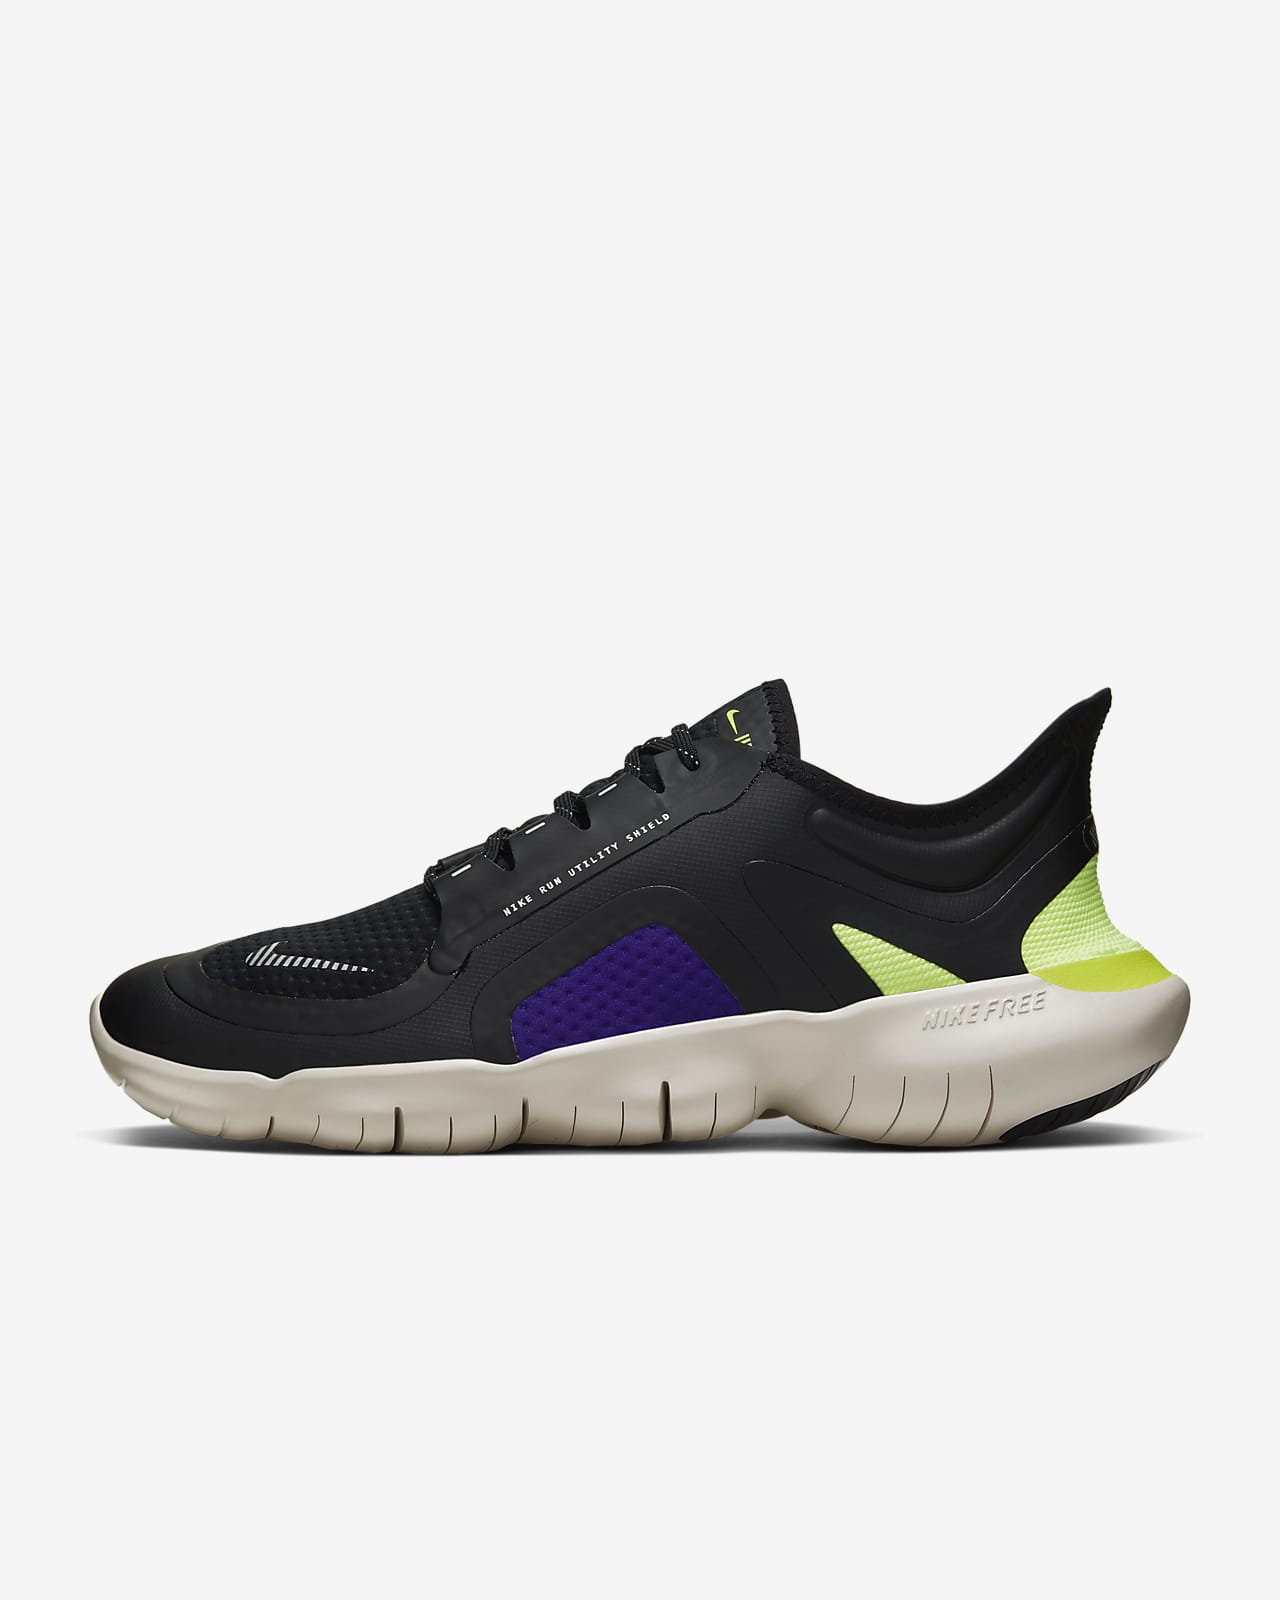 Chaussure de running Nike Free RN 5.0 Shield pour Homme